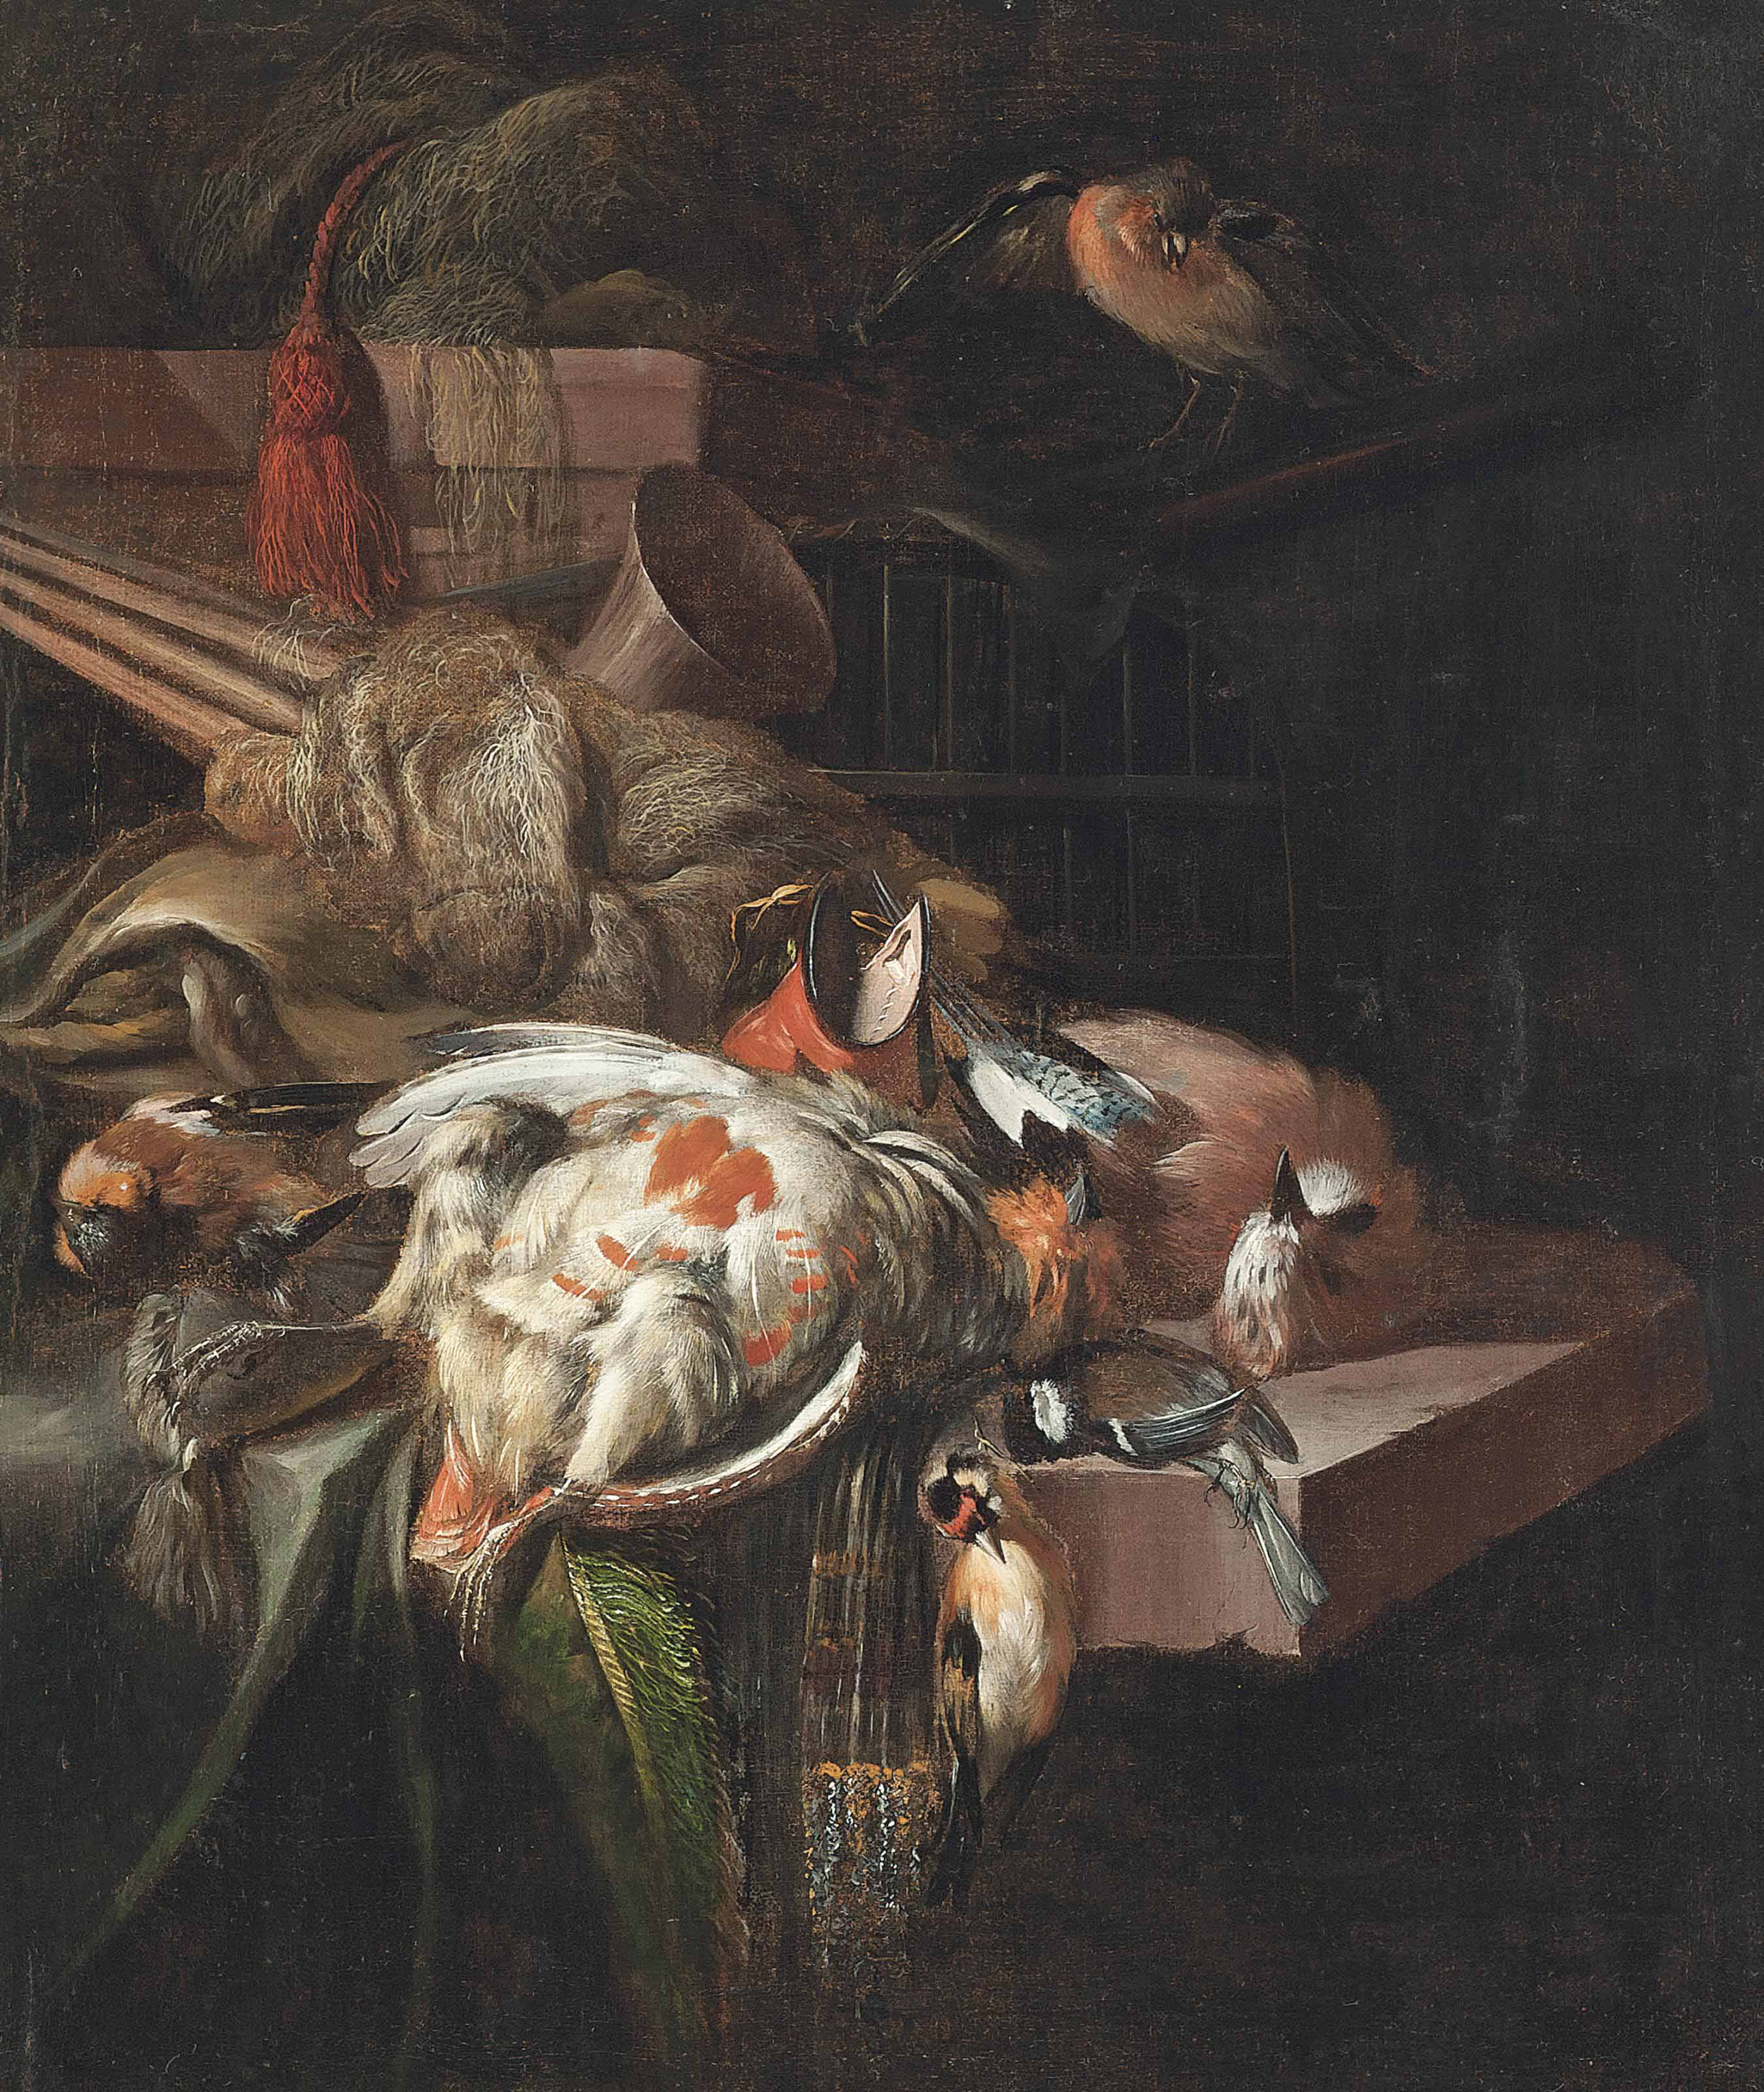 A partridge, bullfinches and other birds, with hunting paraphernalia, on a partially draped stone ledge